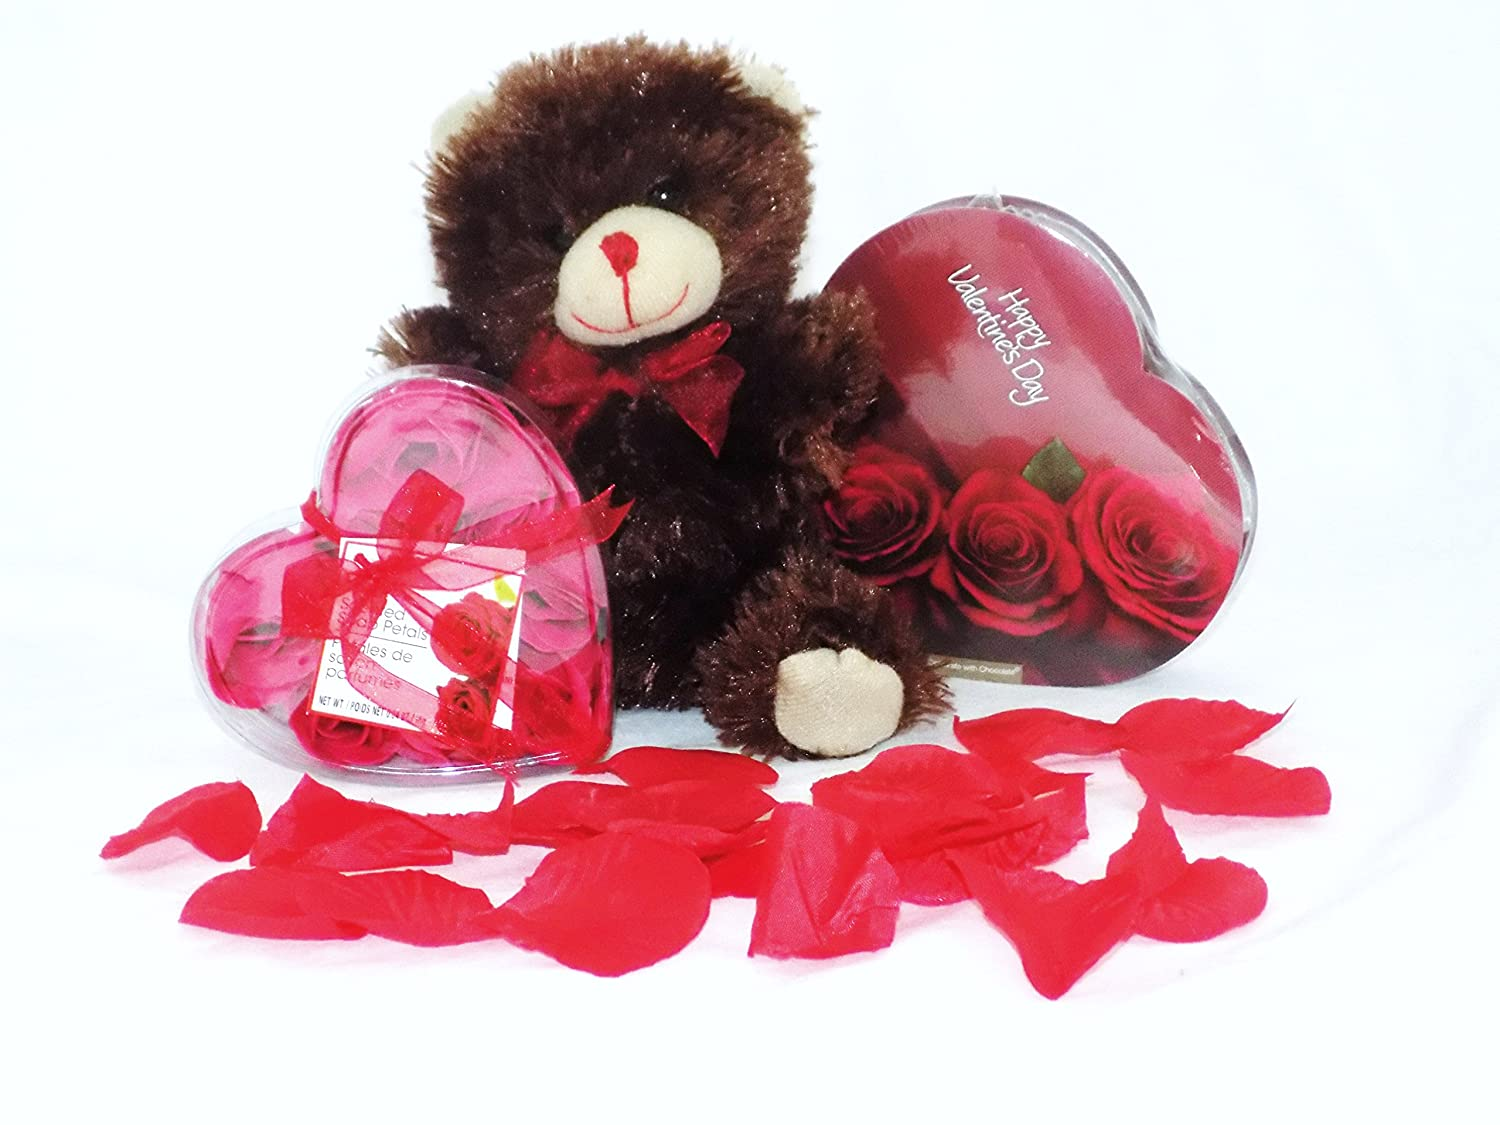 Valentine's Day Chocolate Roses discount and Bear Safety trust Teddy Gift